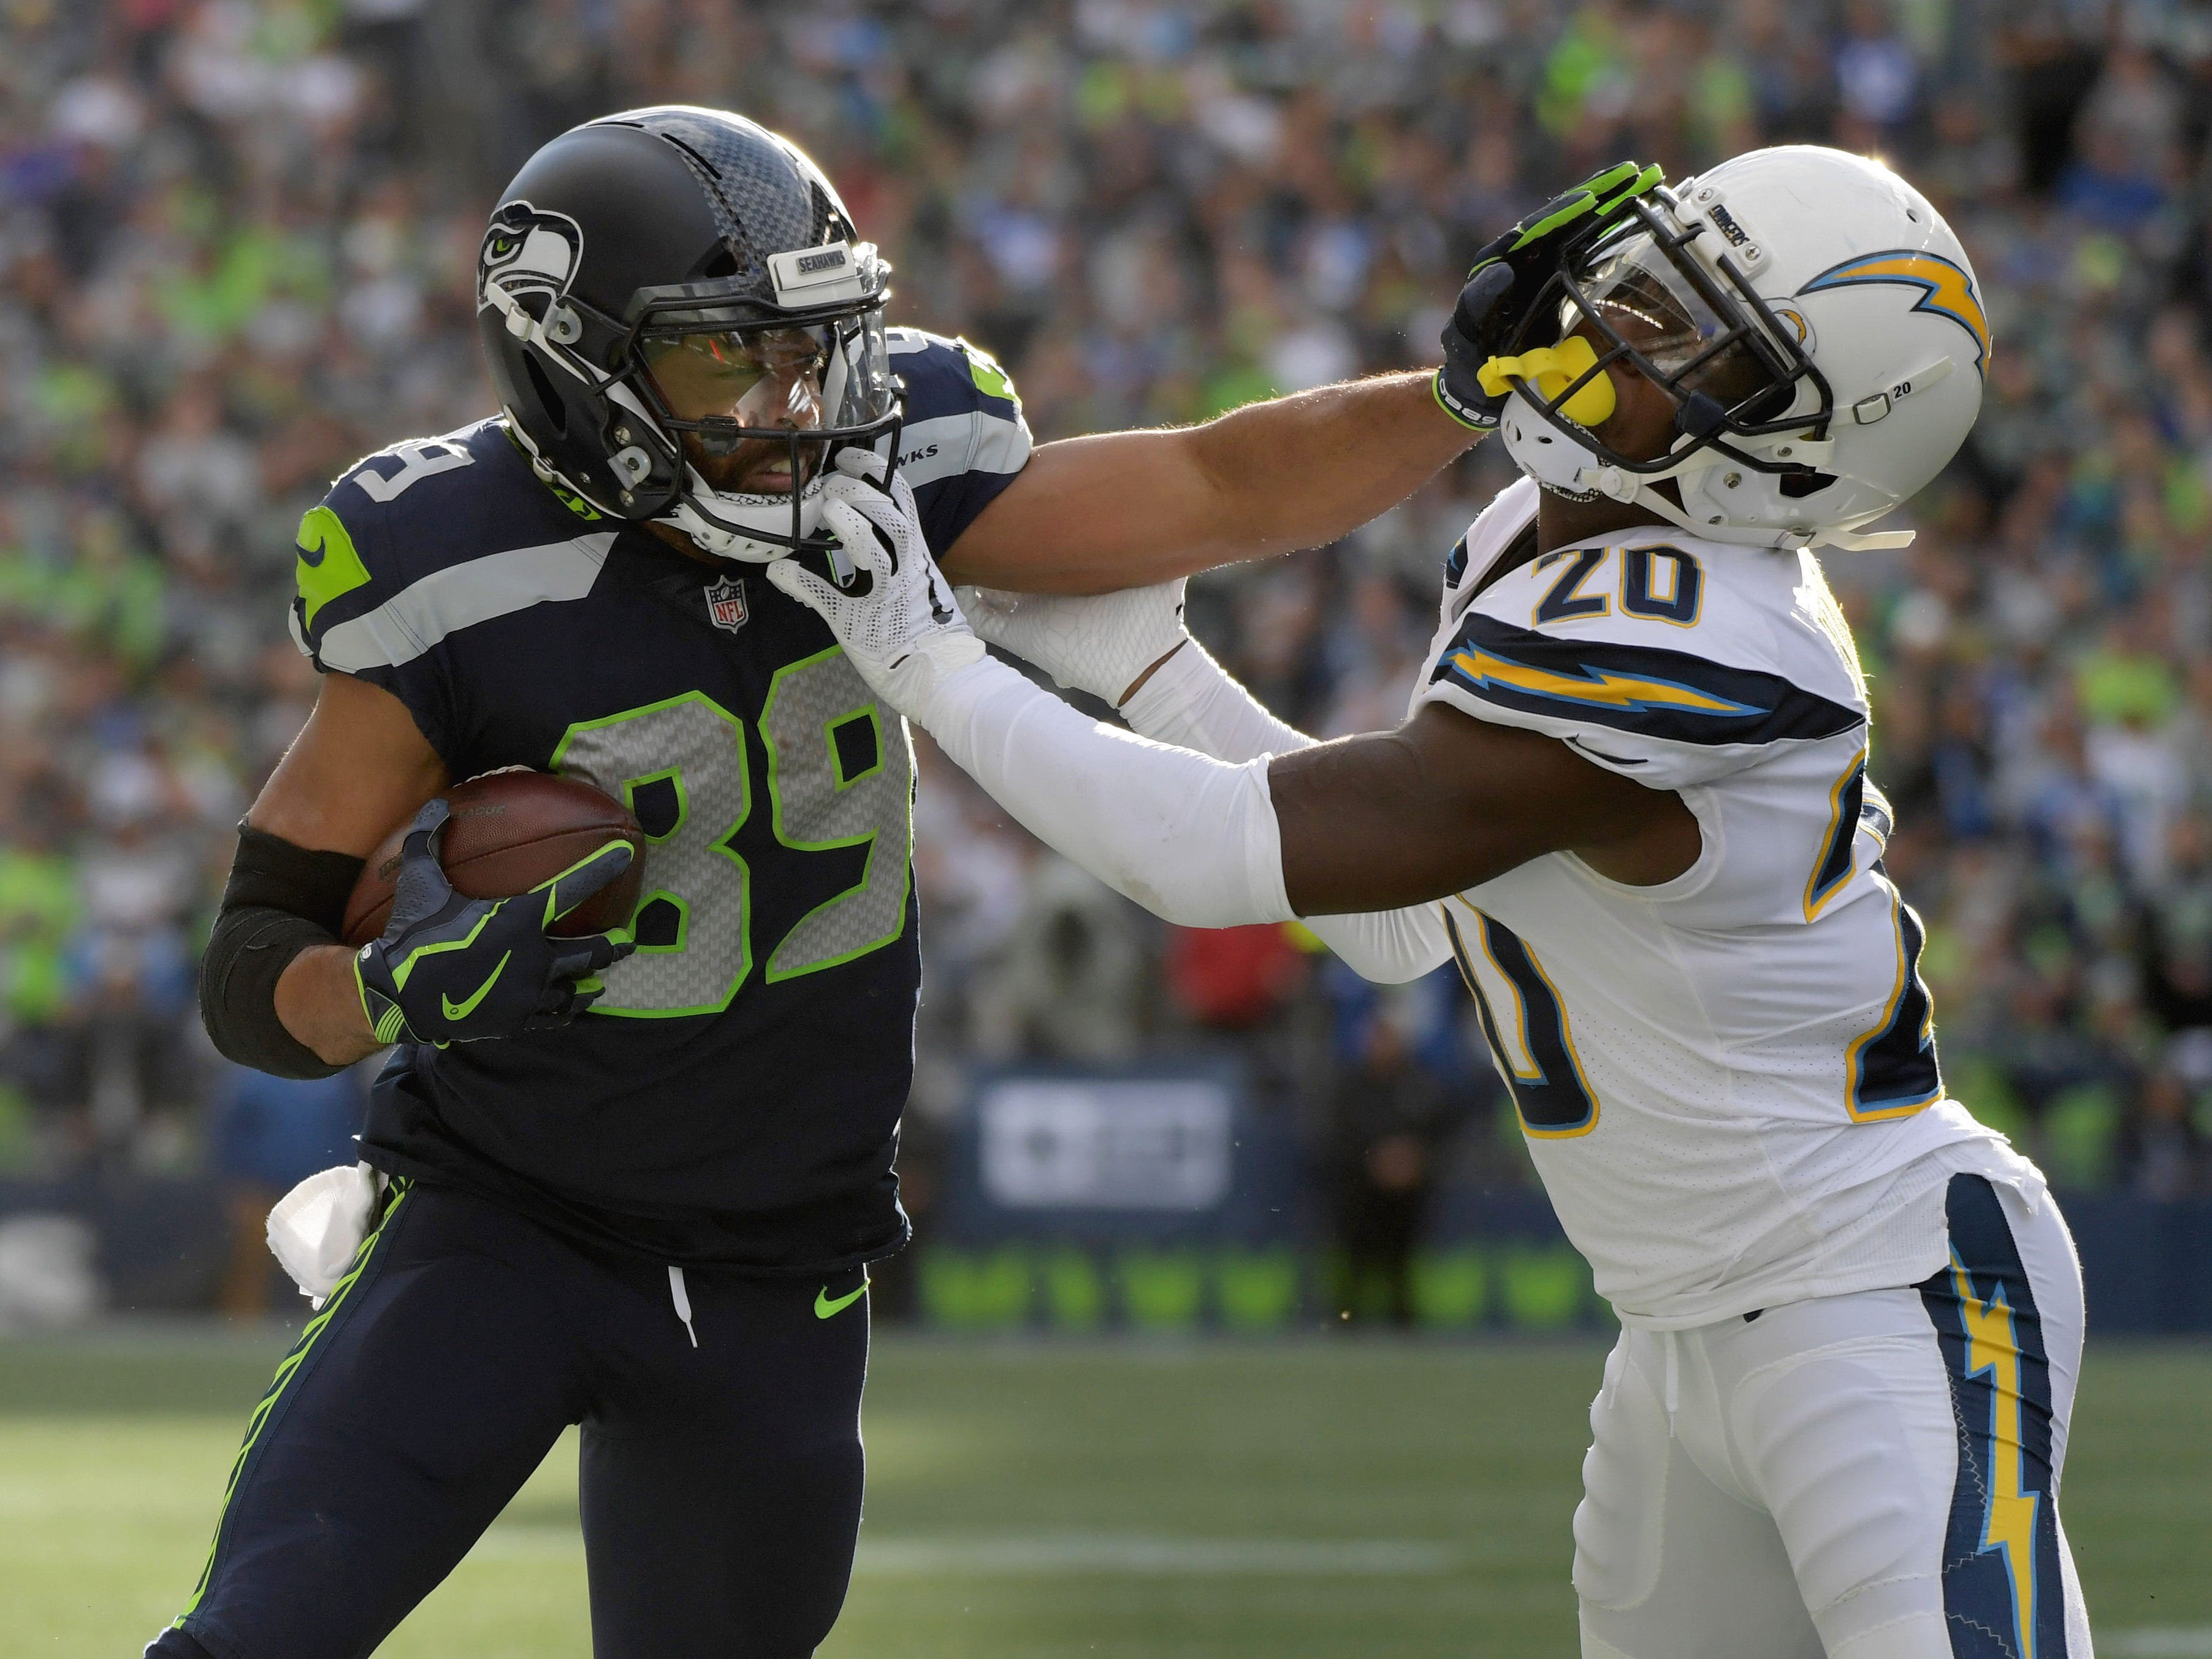 Seattle Seahawks wide receiver Doug Baldwin (89) battles with Los Angeles Chargers defensive back Desmond King (20) in the second quarter at CenturyLink Field.